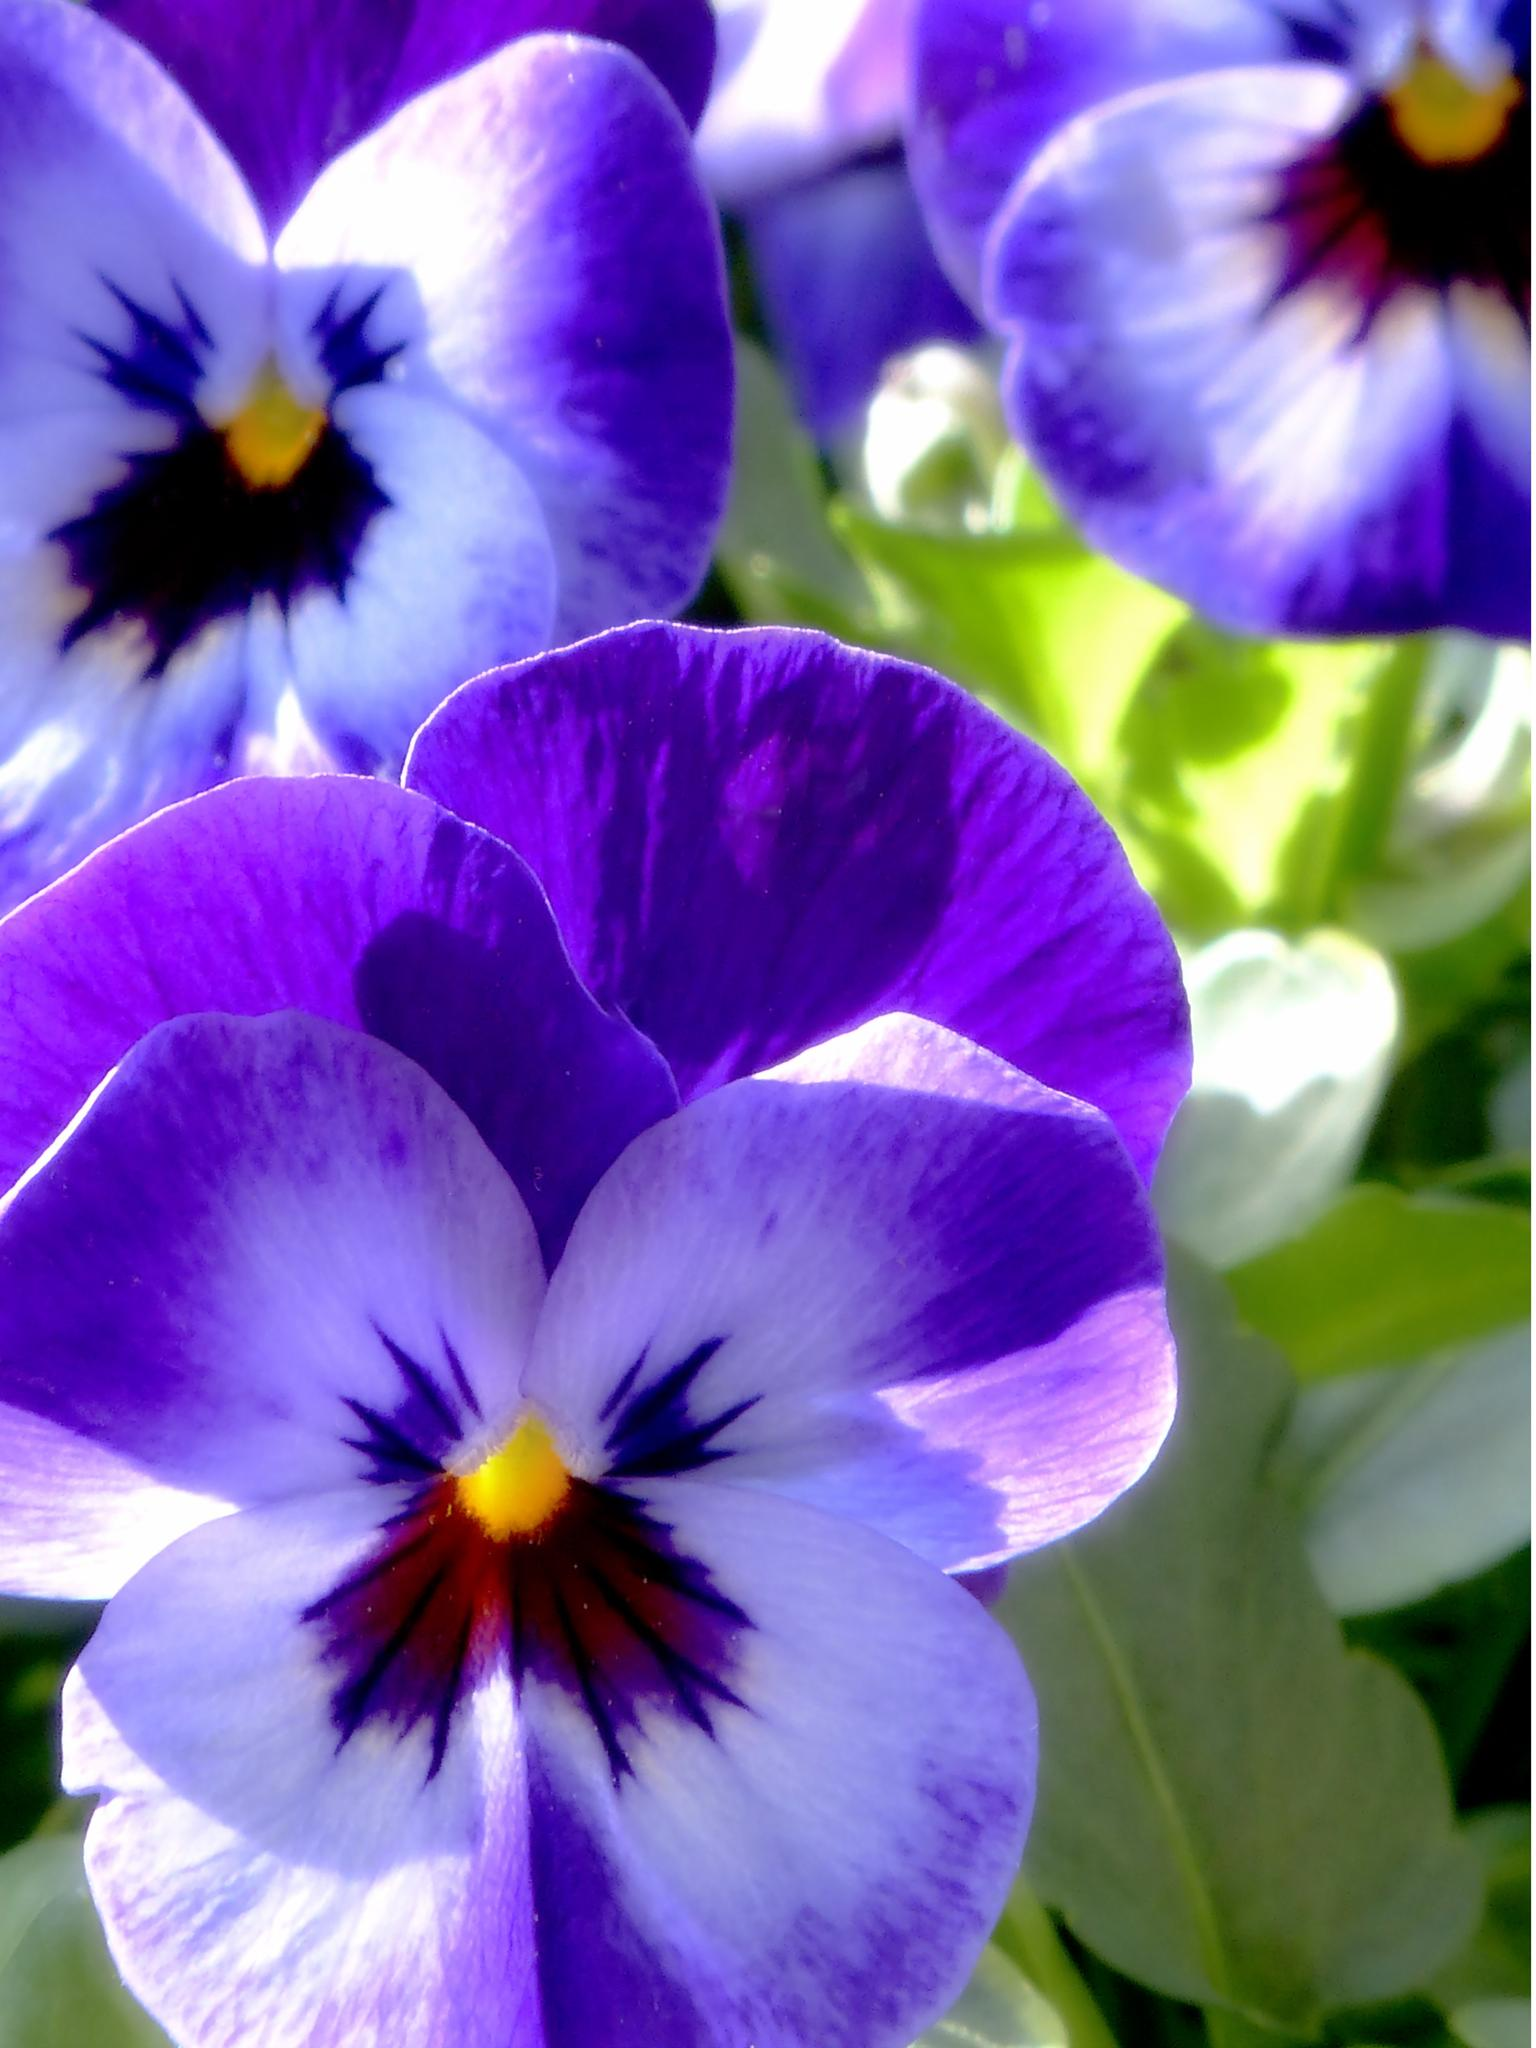 Spring Flowers 20 by Raymond Thill